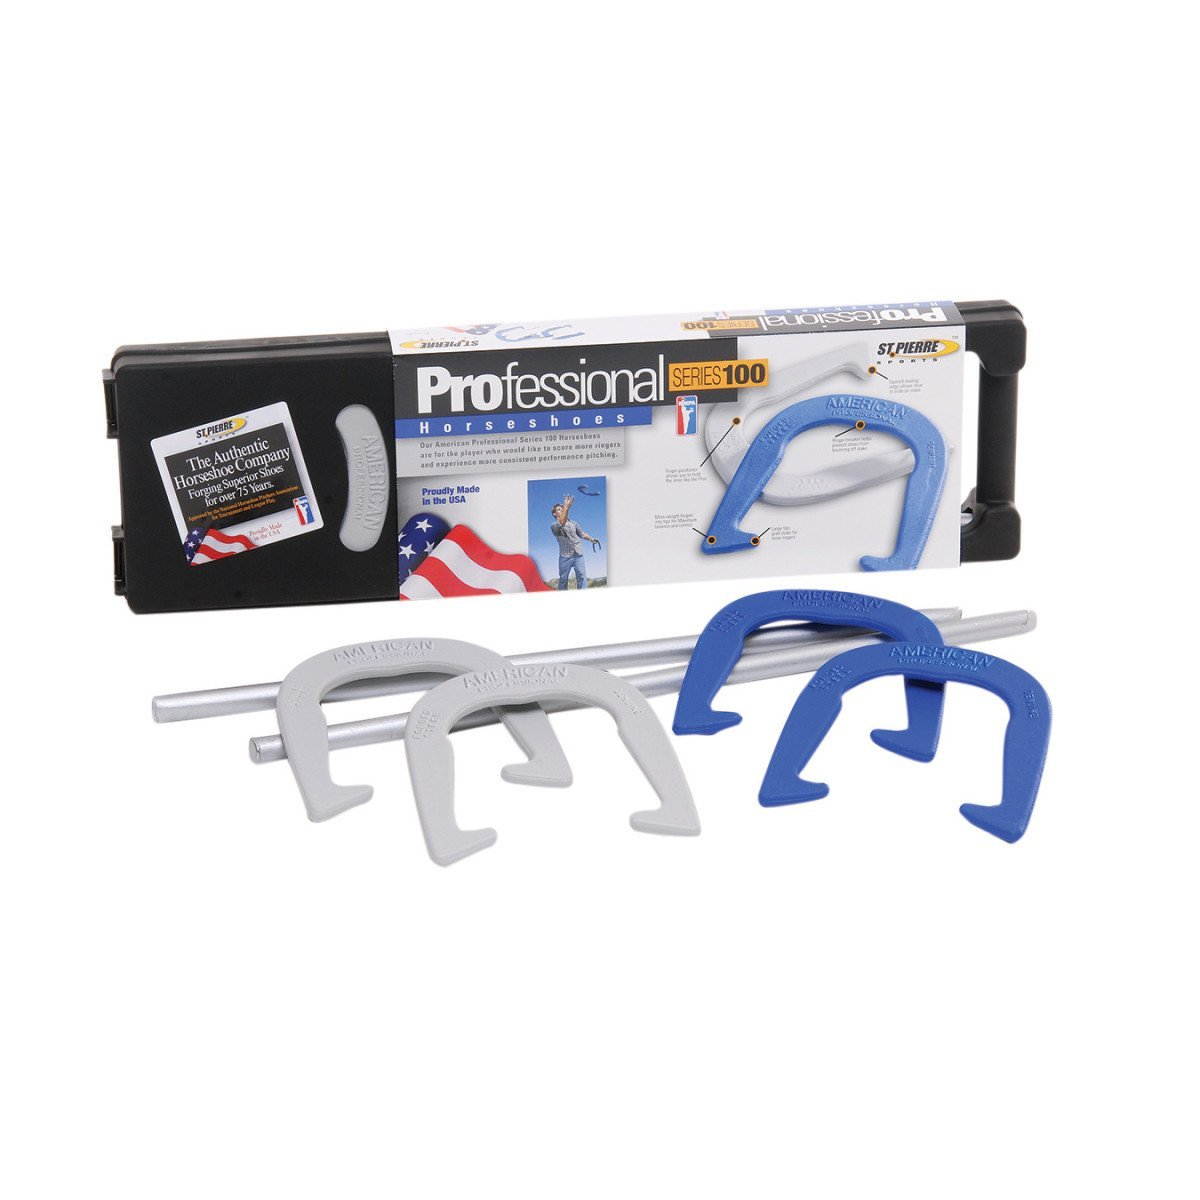 St. Pierre Professional Horseshoes set